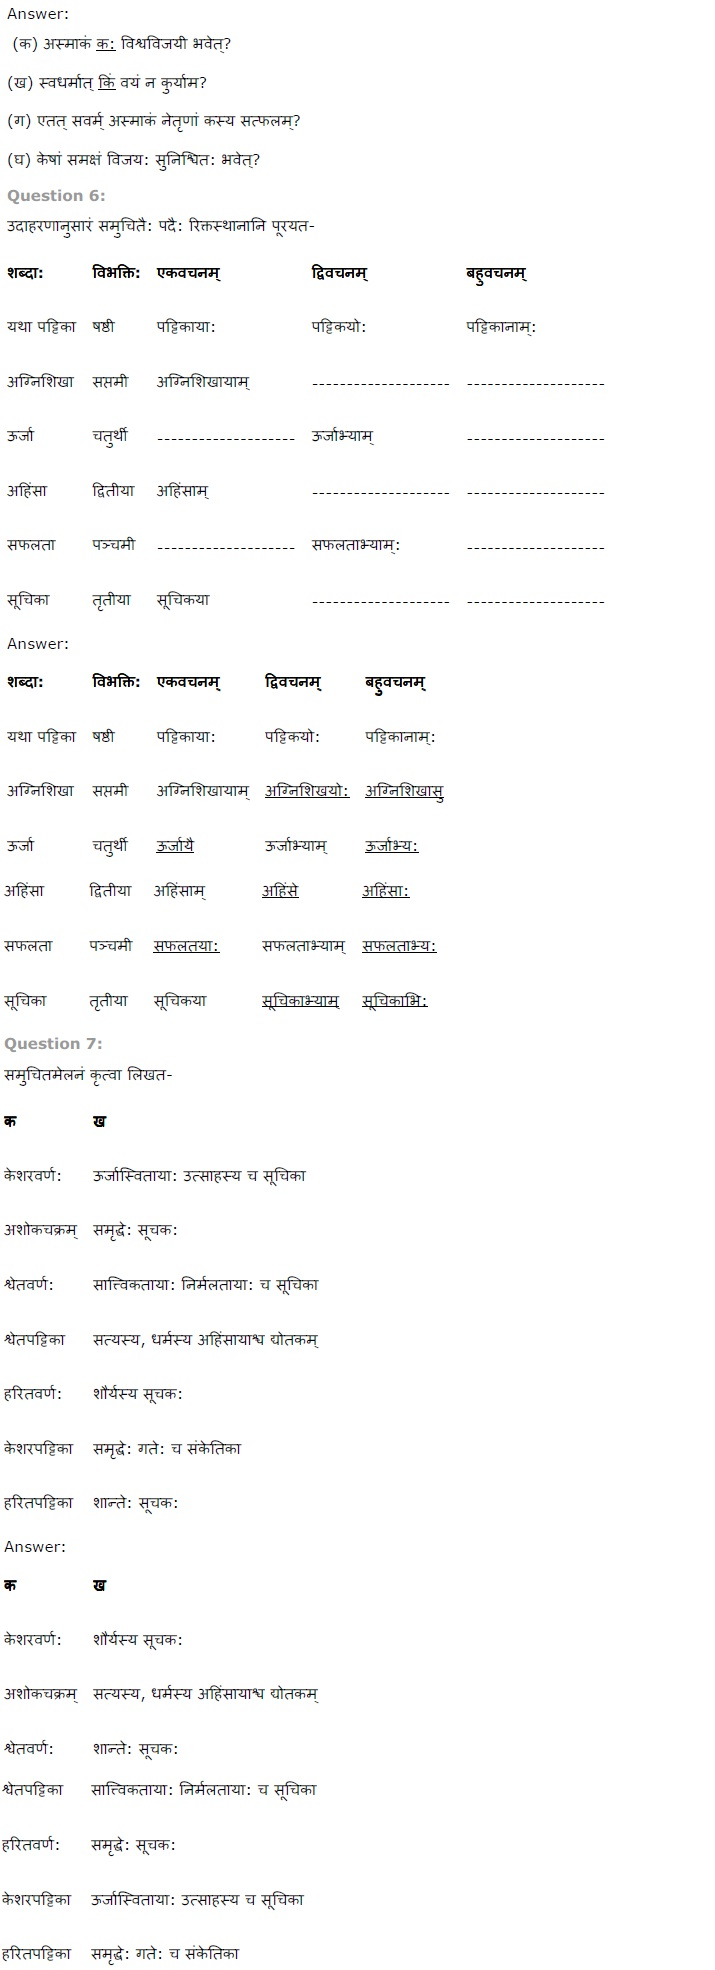 NCERT Solutions for Class 7th Sanskrit Chapter 8 - त्रिवर्ण ध्वज